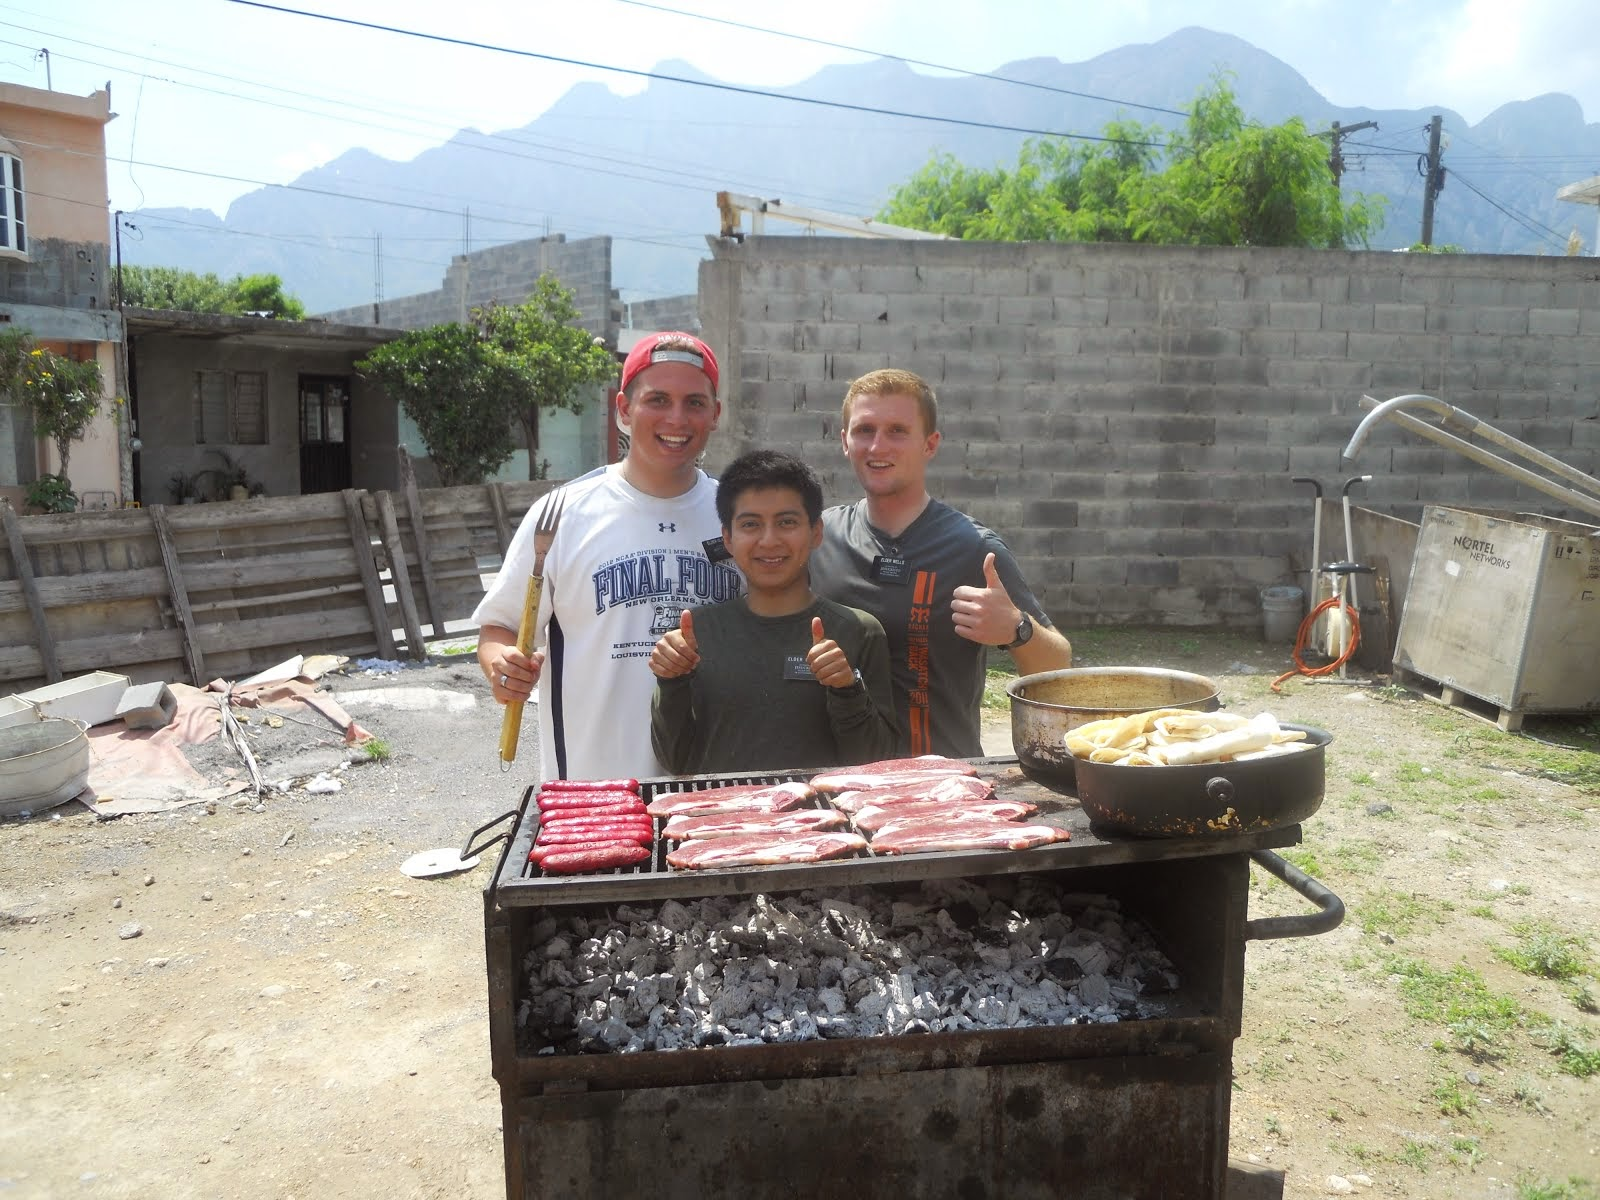 BBQ's even in Mexico